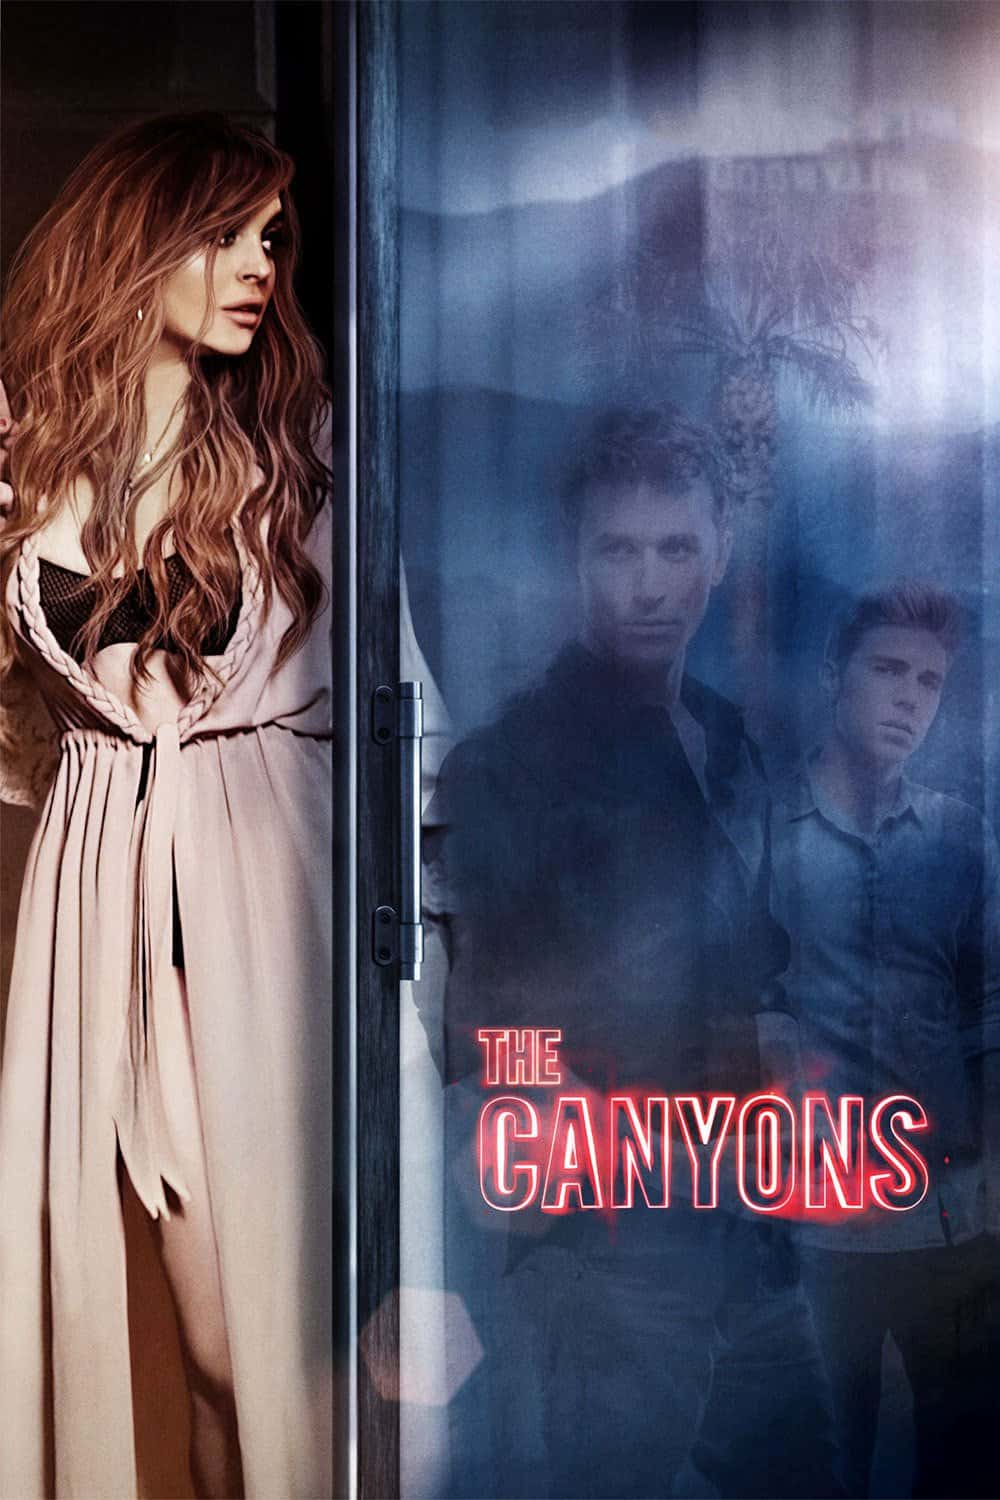 The Canyons, 2013